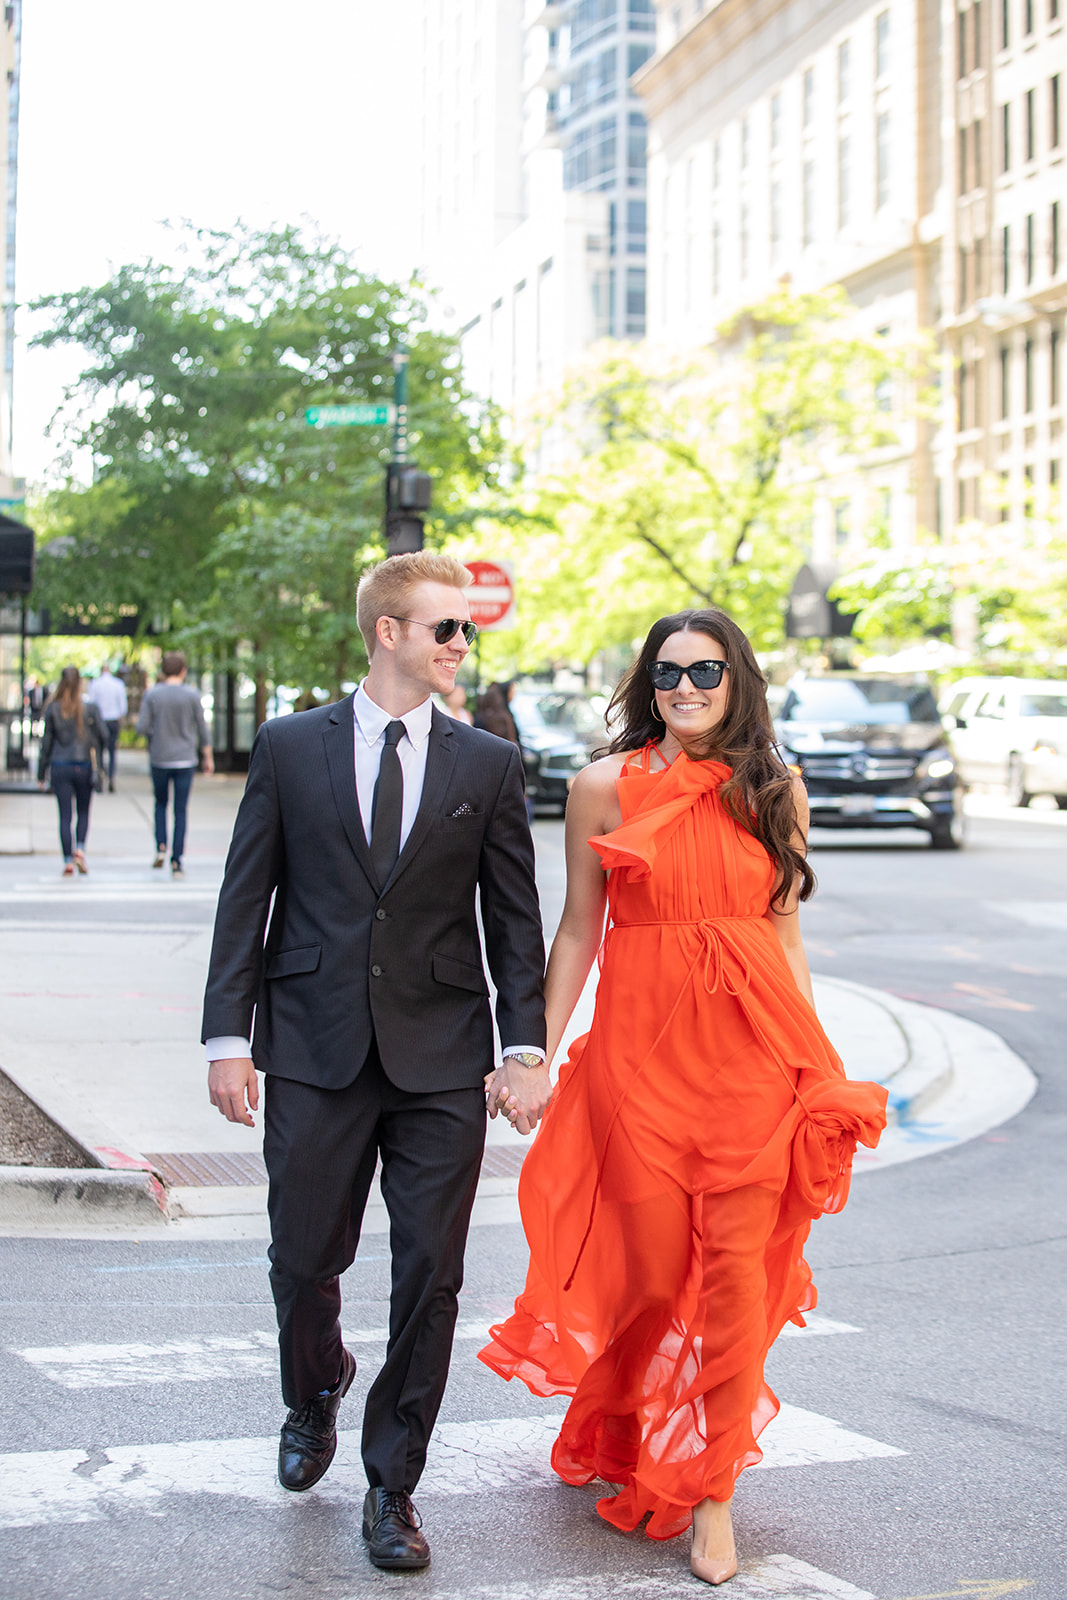 Chicago engagement photo shoot e-session collin pierson photography sunglasses walking across street city glam